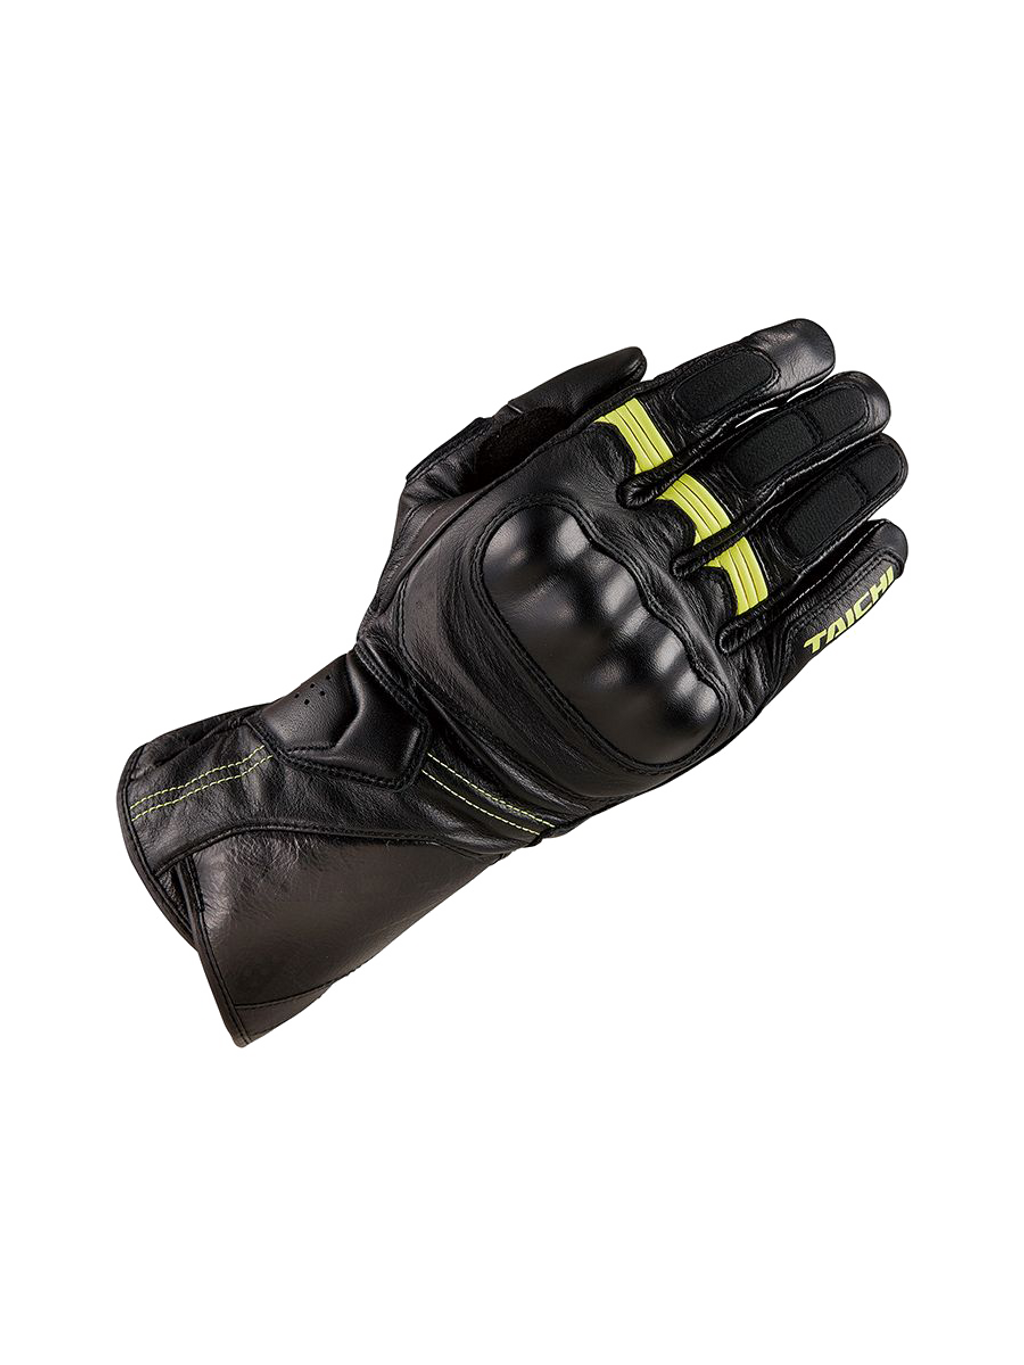 72 RS TAICHI RST453 CORSA LEATHER GLOVE black neon.png